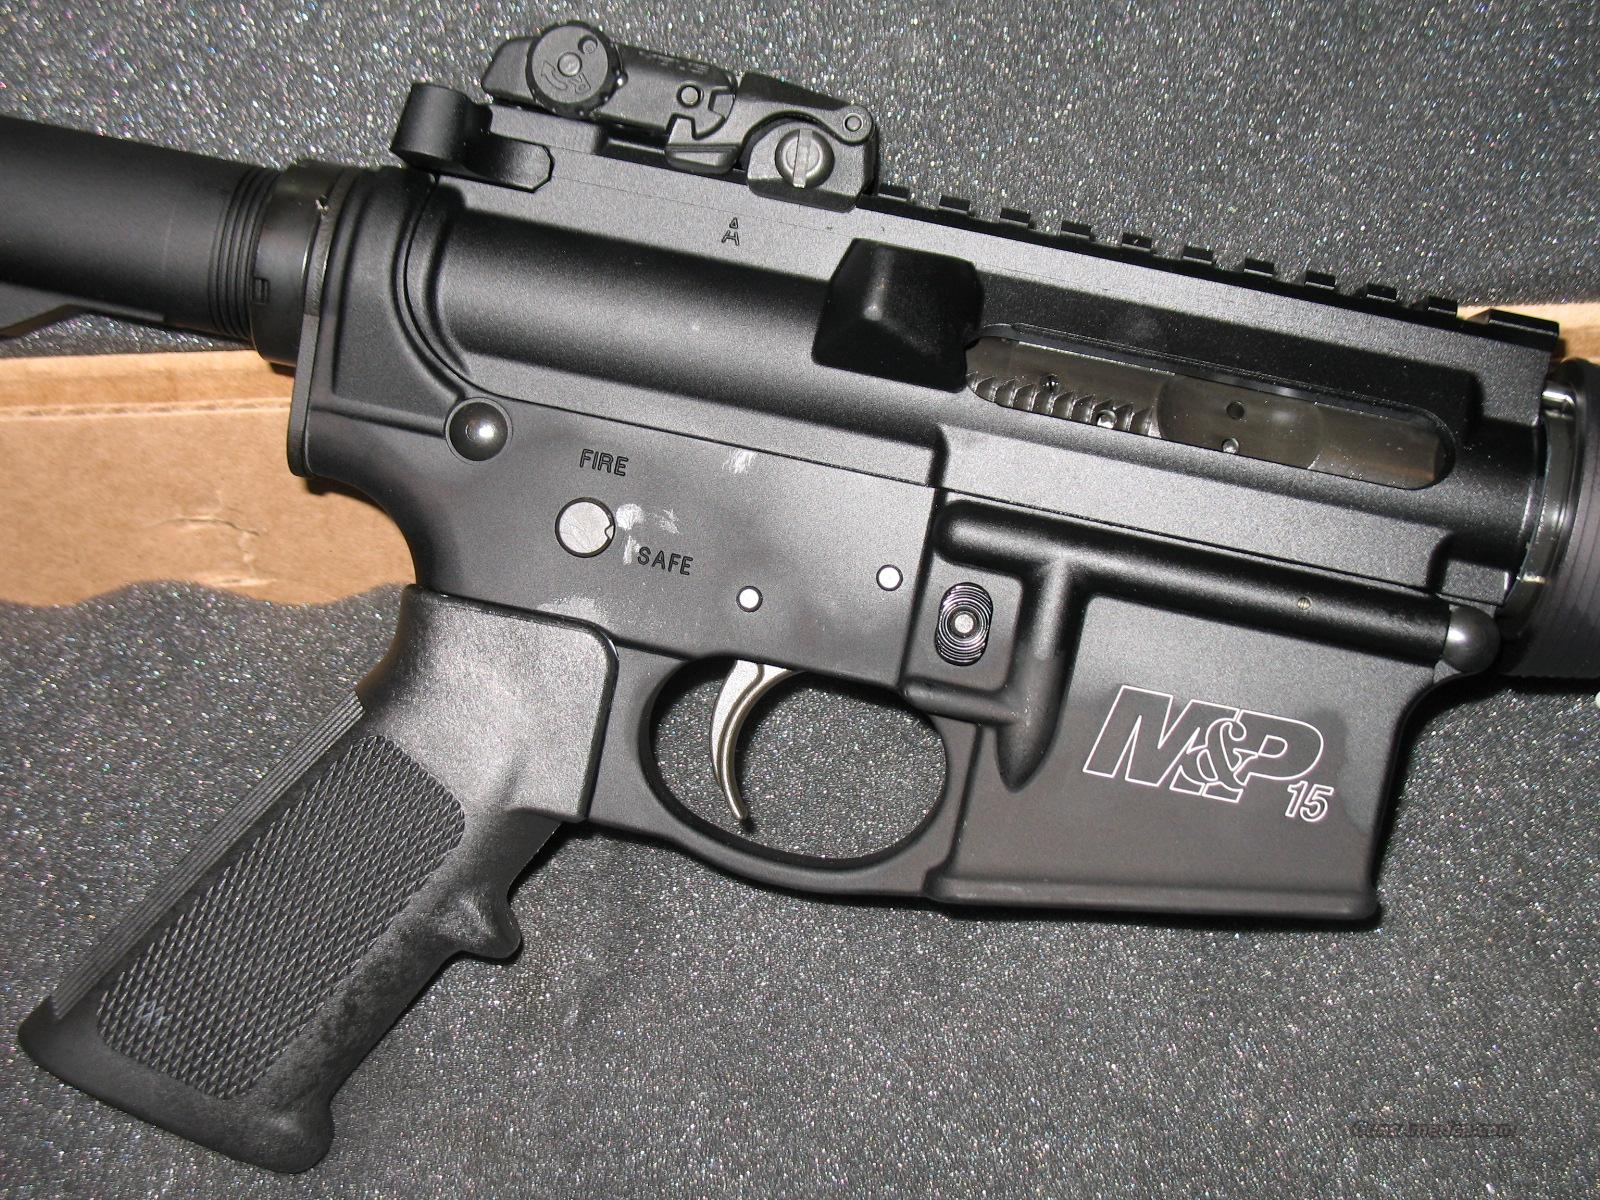 Smith & Wesson M&P 15 Sport  Guns > Rifles > Smith & Wesson Rifles > M&P